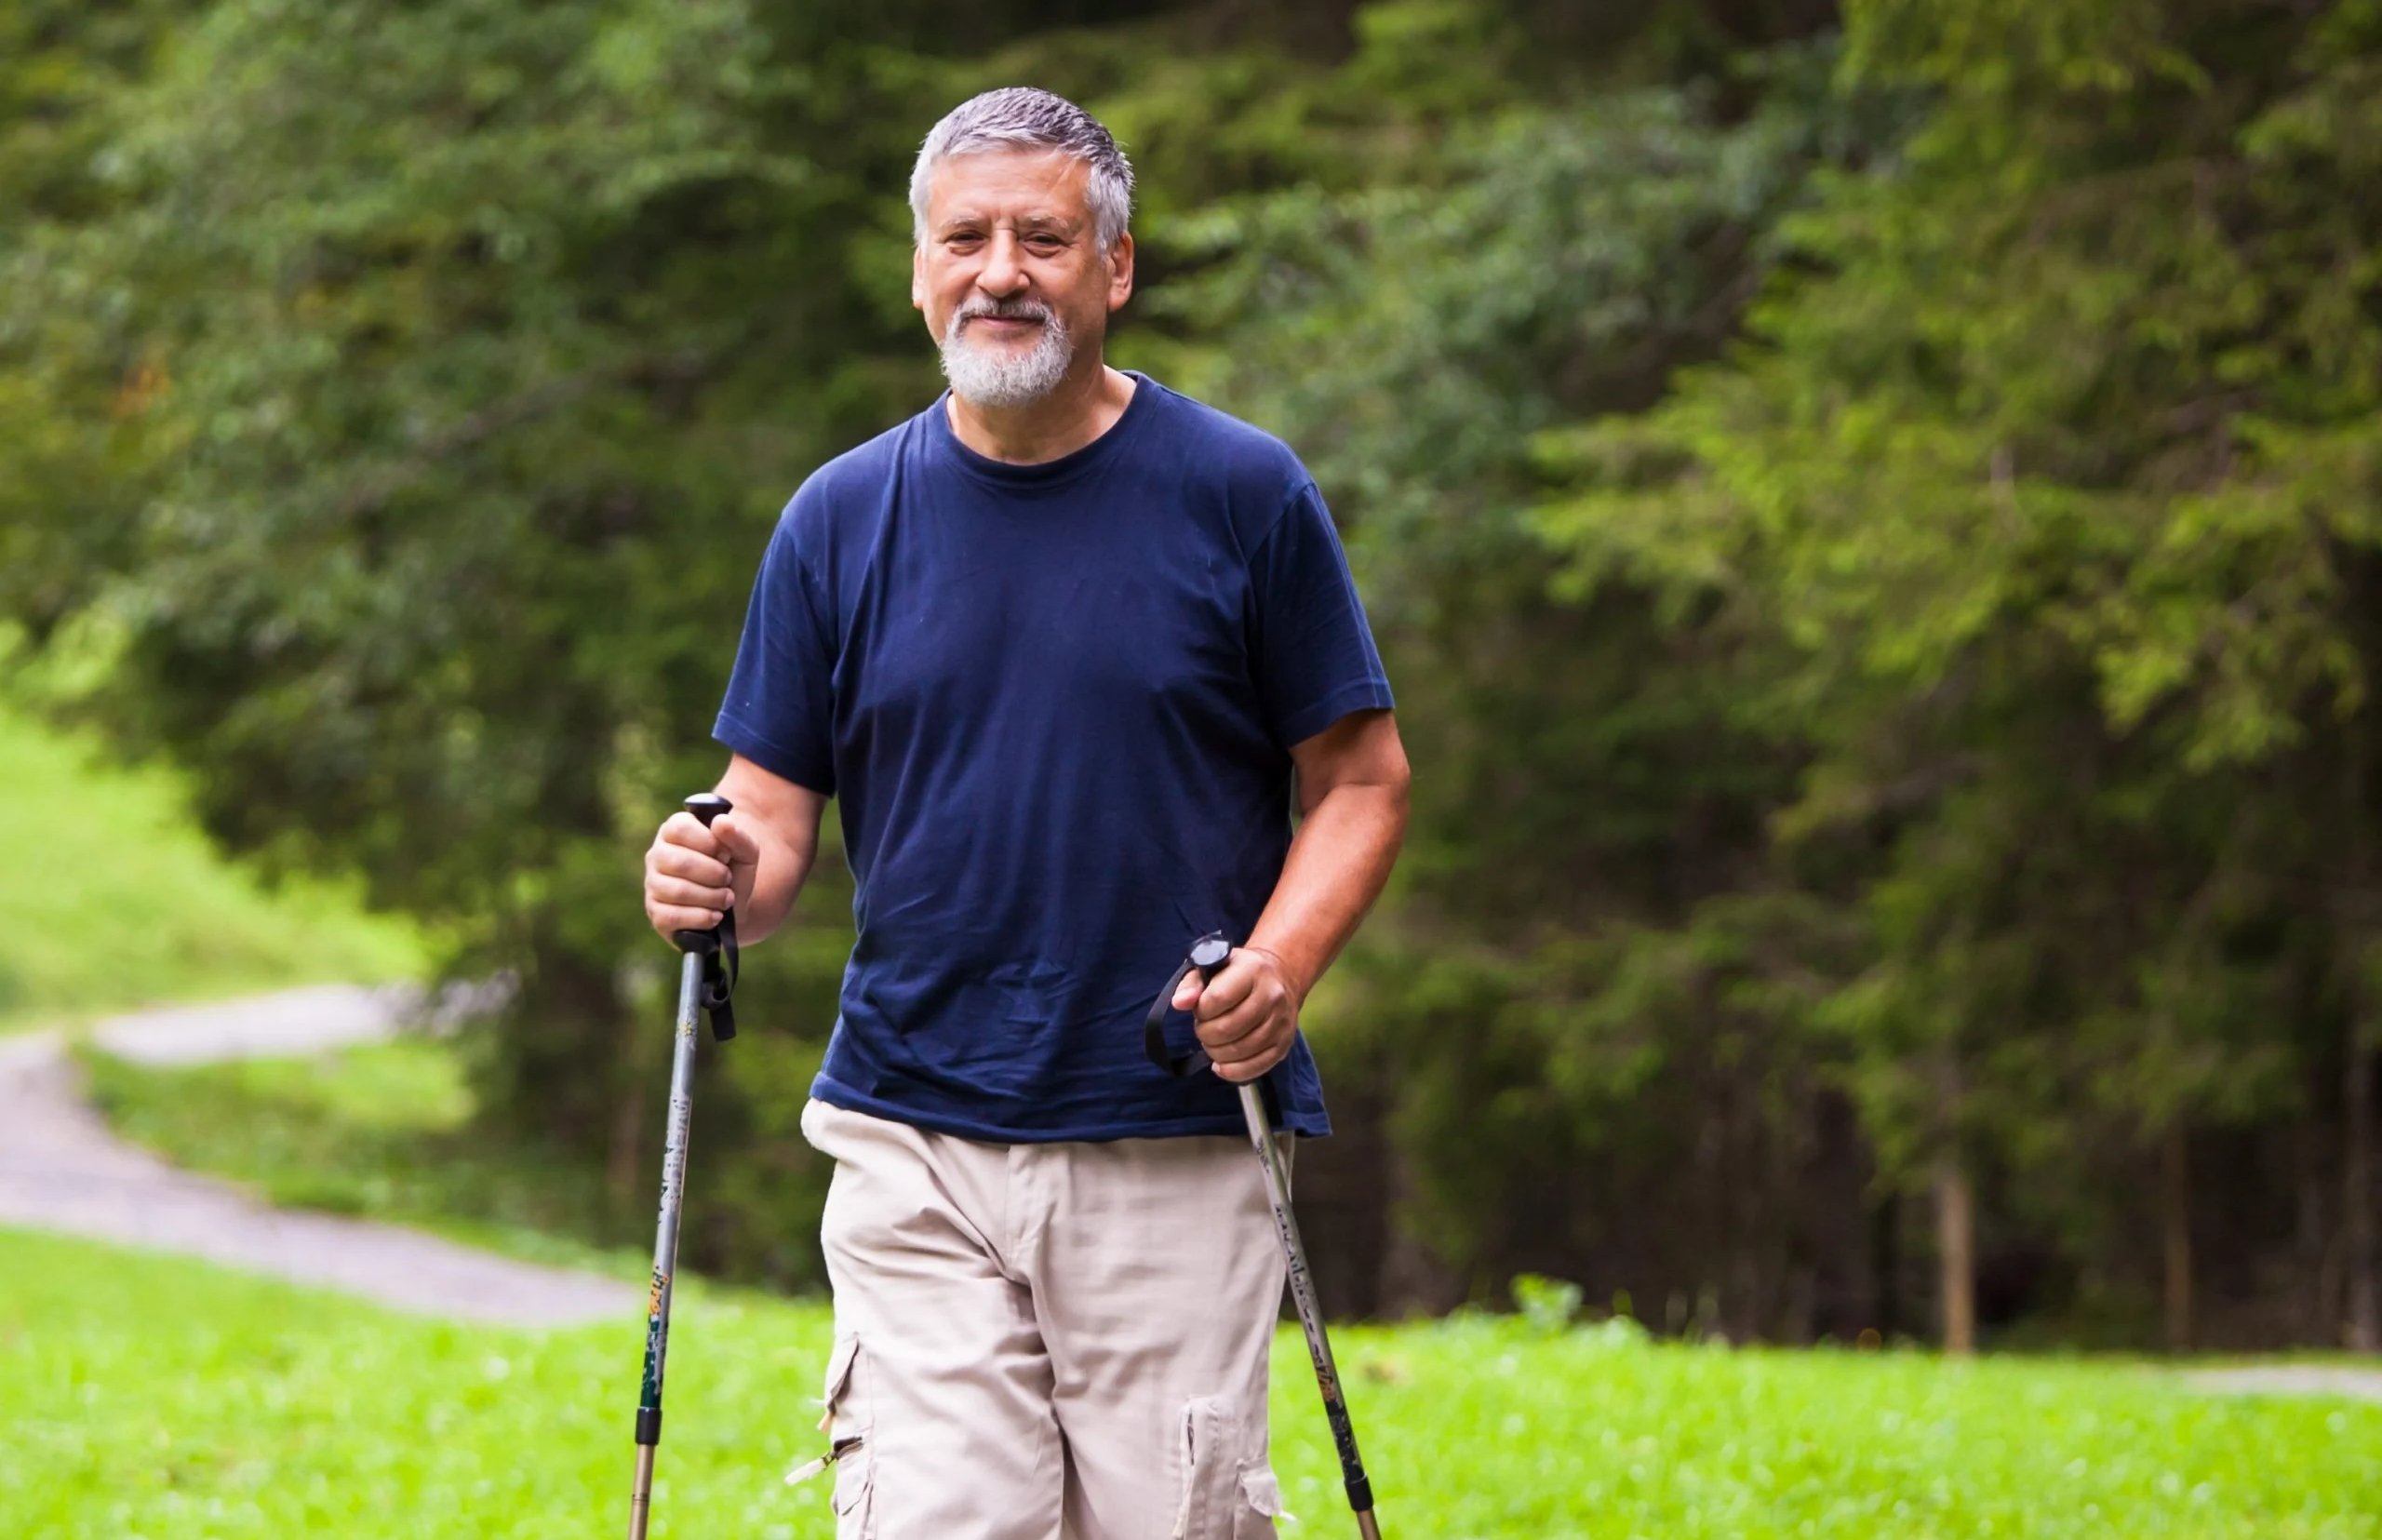 Low Fitness Linked to Higher Psoriasis Risk Later in Life